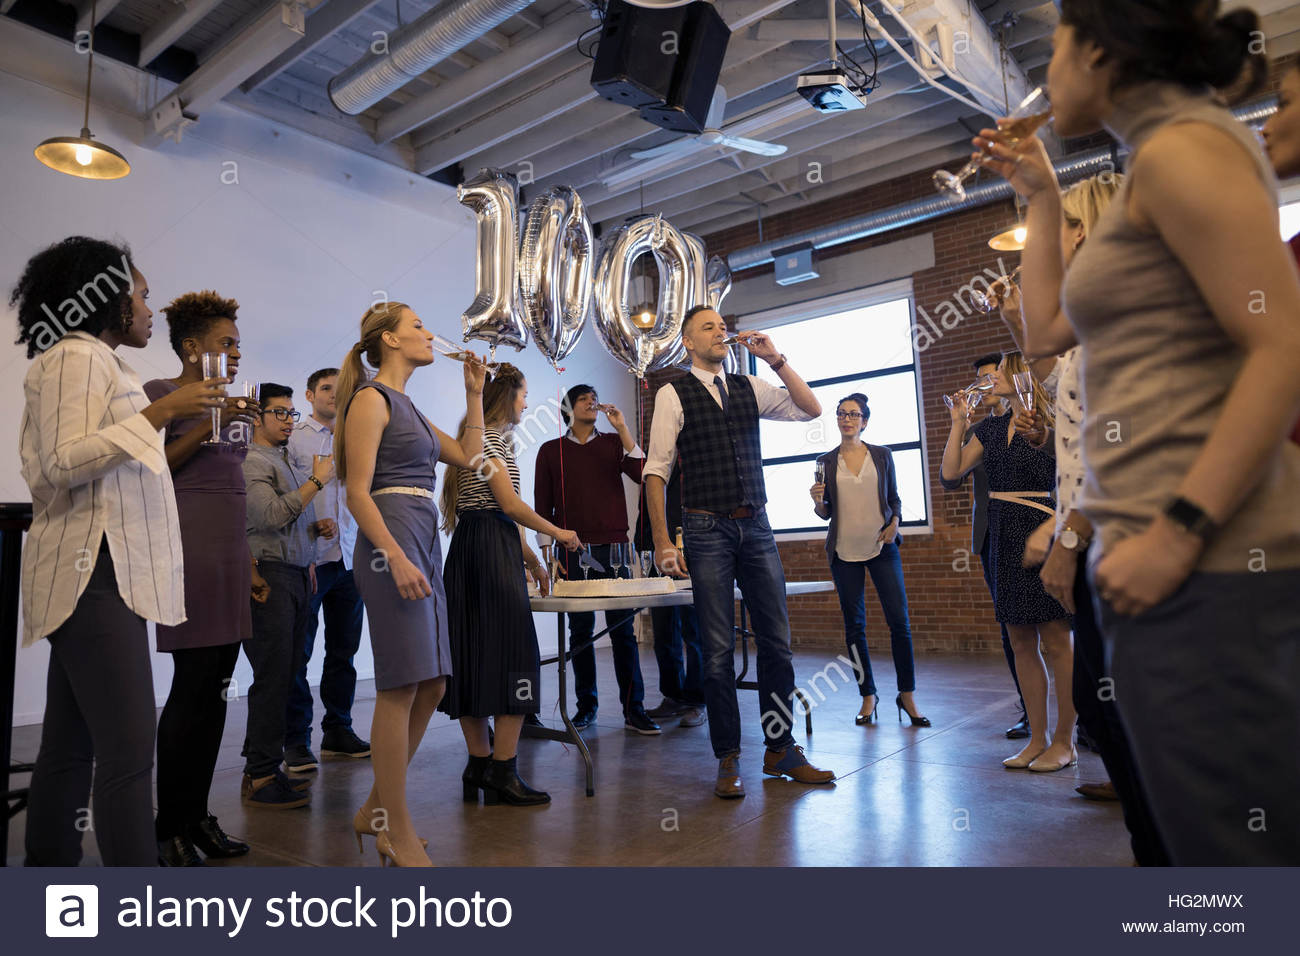 Business people celebrating milestone drinking champagne in conference room - Stock Image